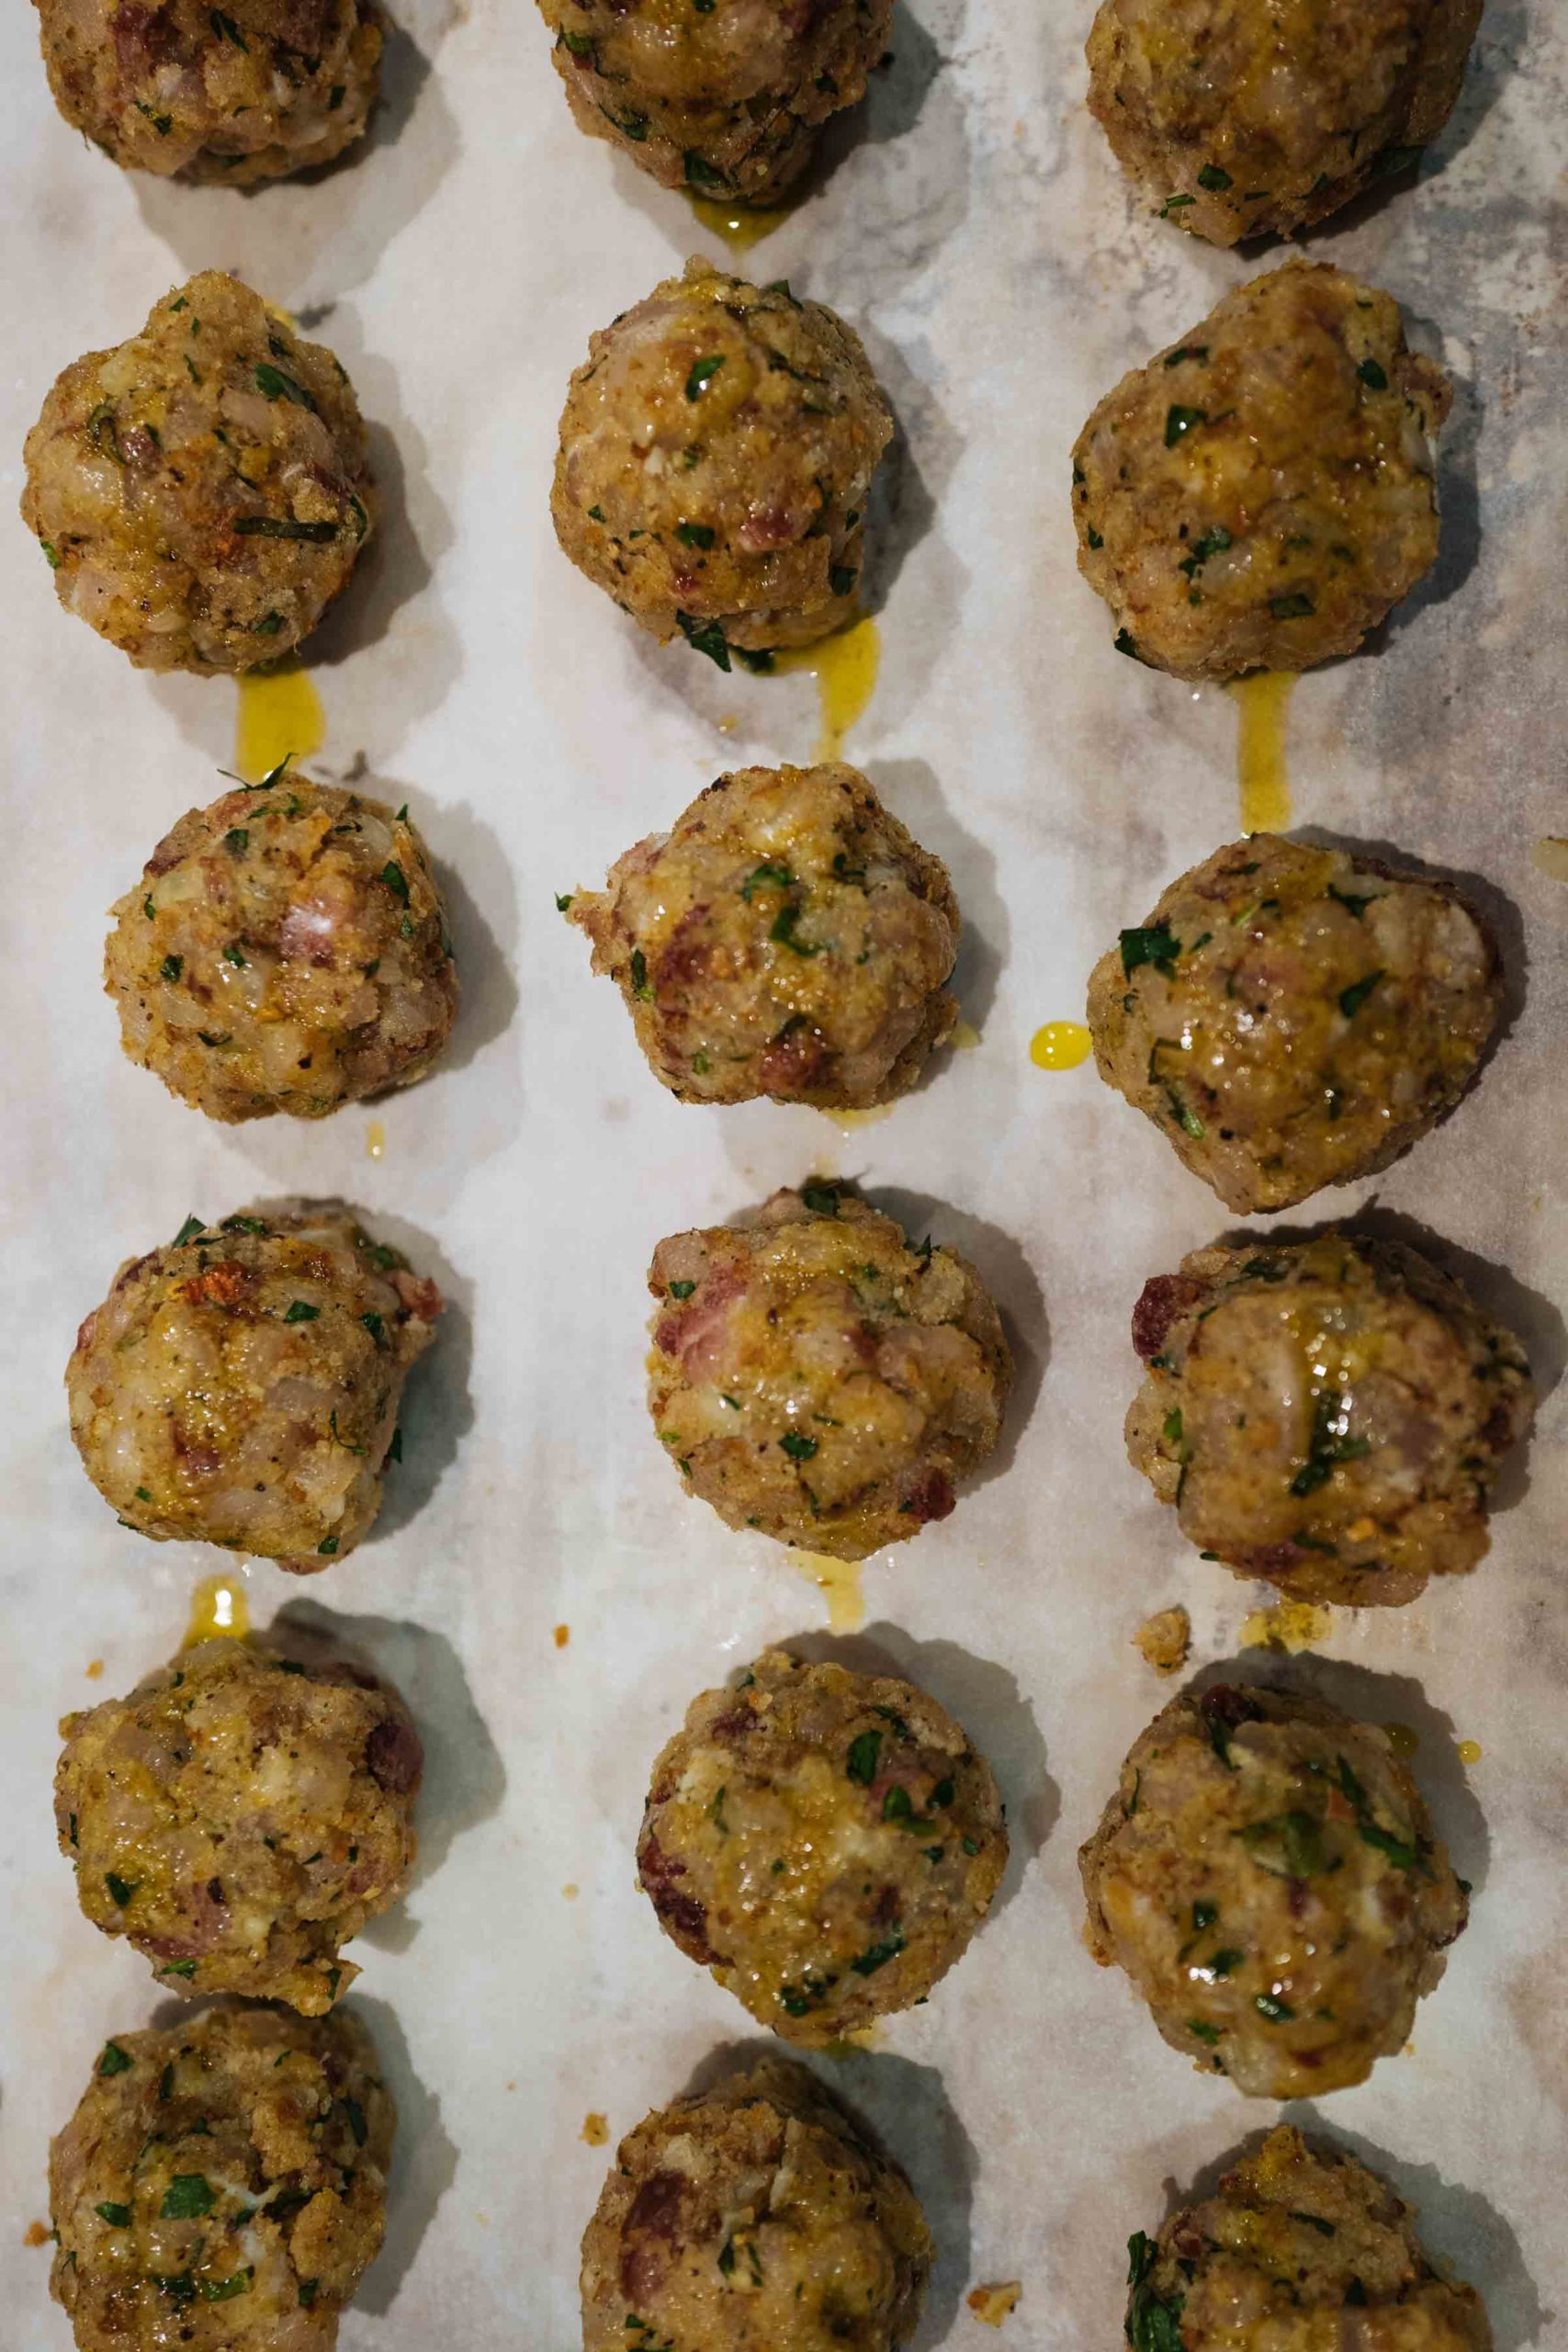 Make your own Sicilian Swordfish Meatballs (Polpette) for a healthy fish dinner. | thetasteedit.com #recipe #meatball #fish